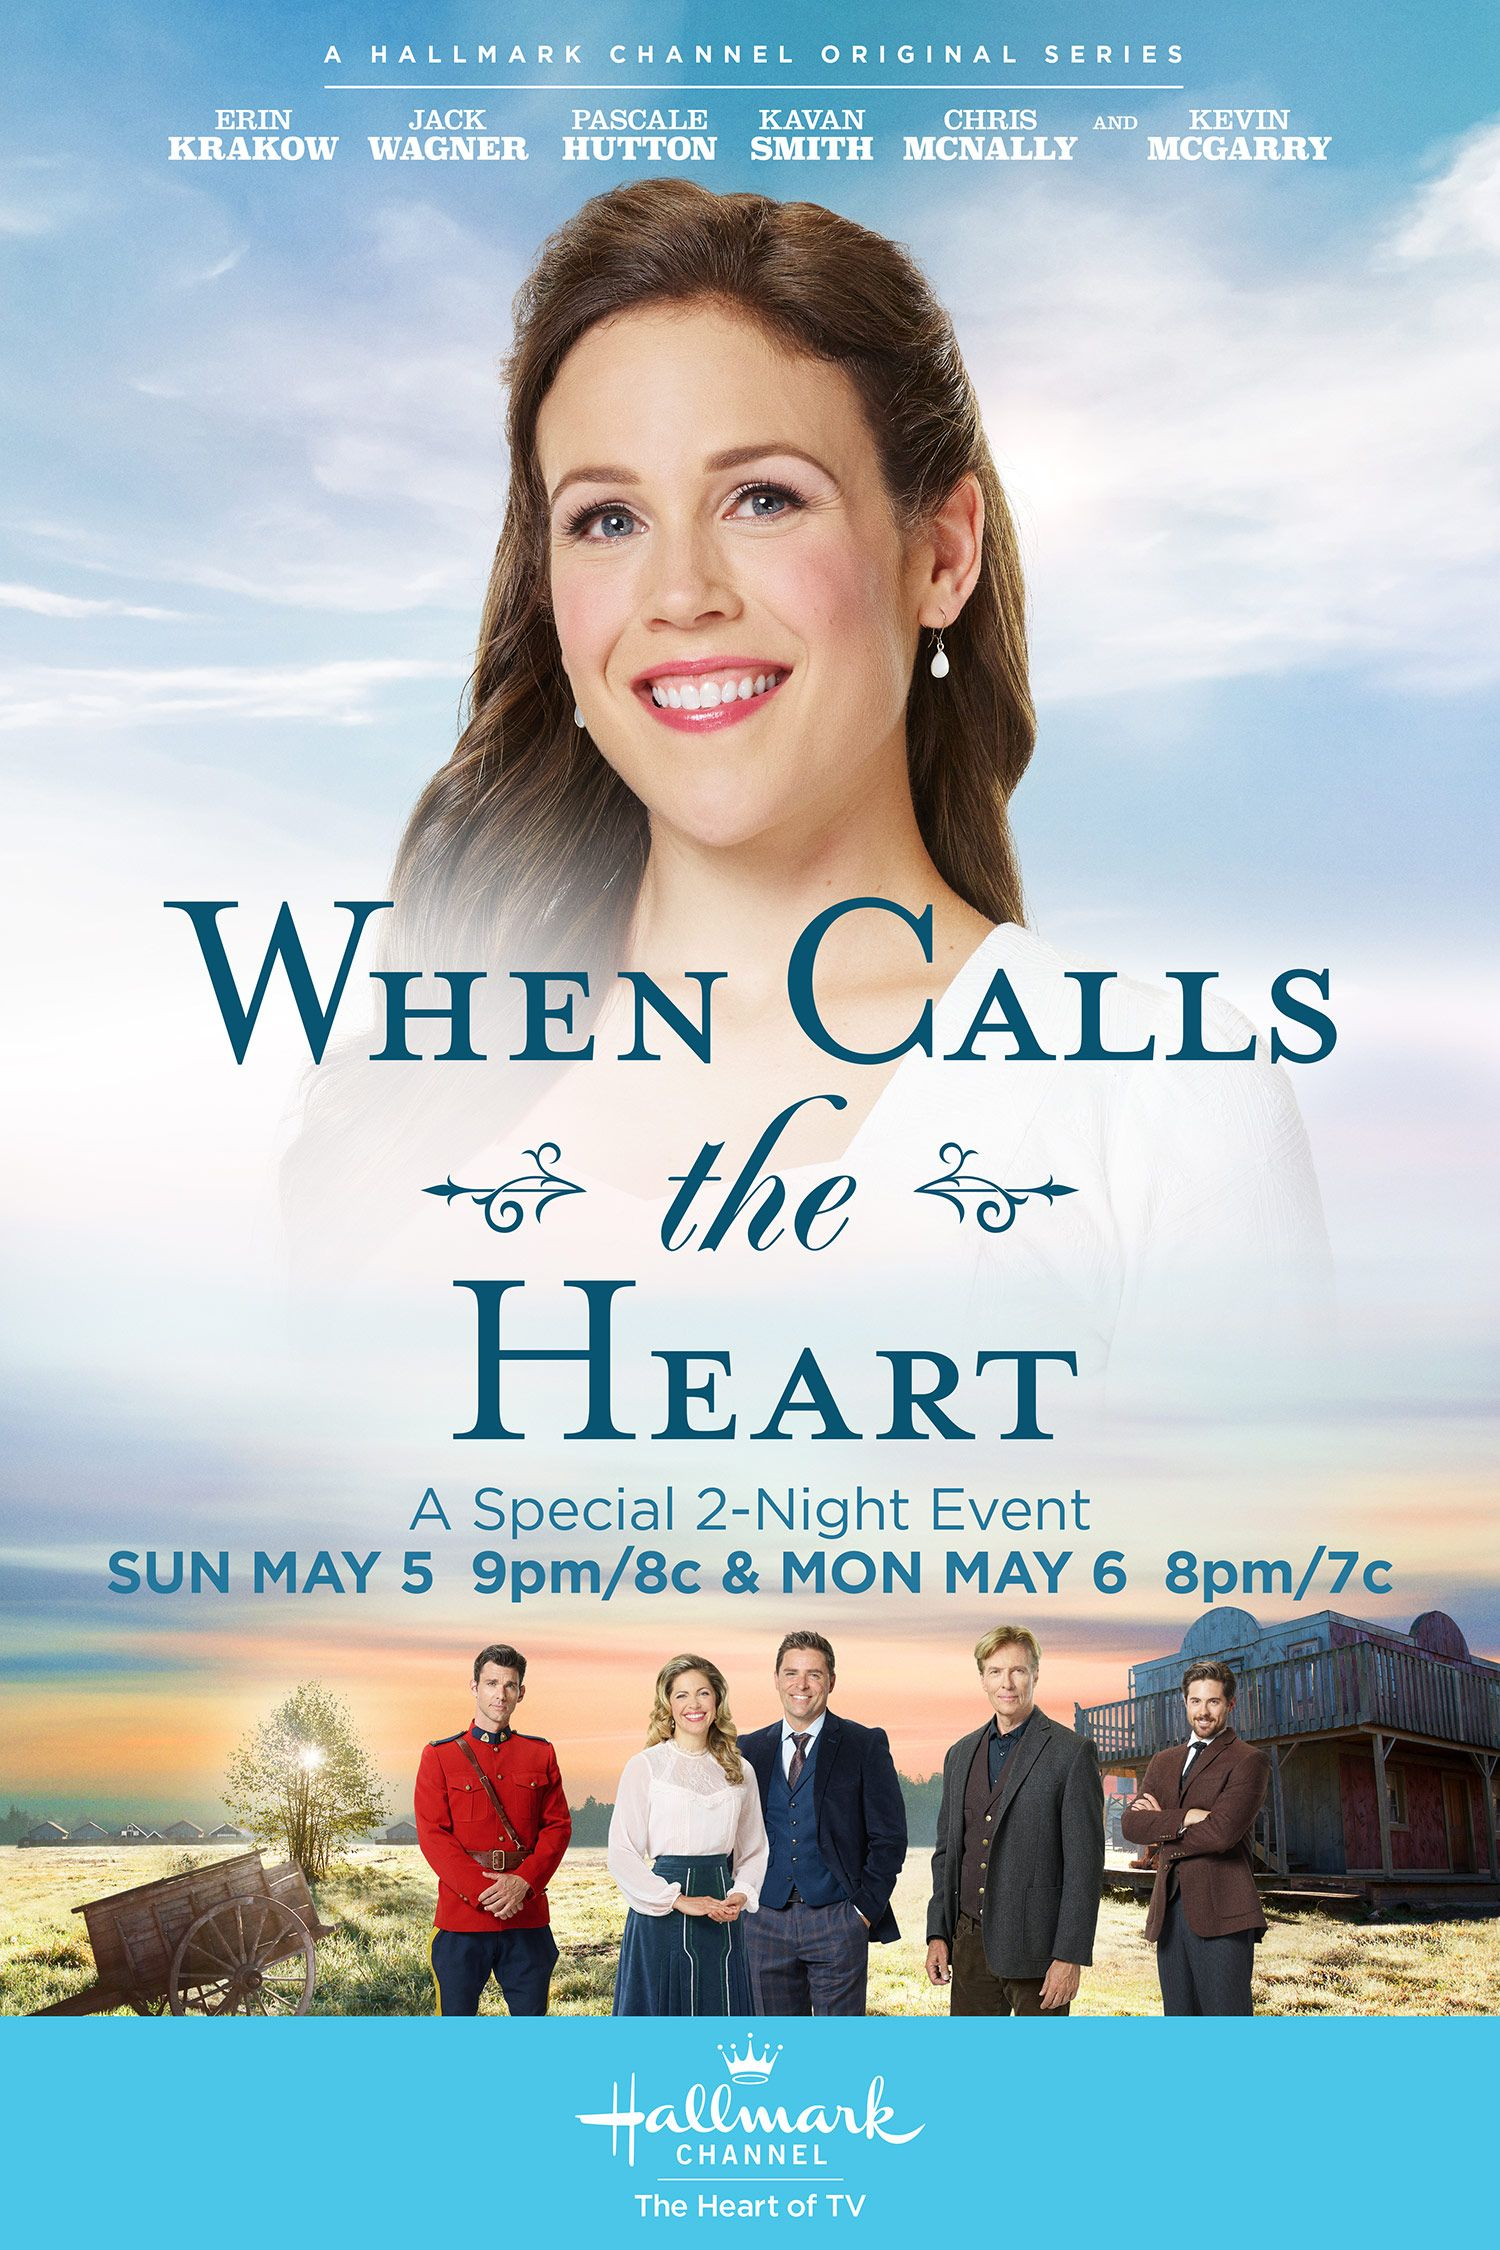 'When Calls the Heart' Removed Any Trace of Lori Loughlin in This New Poster